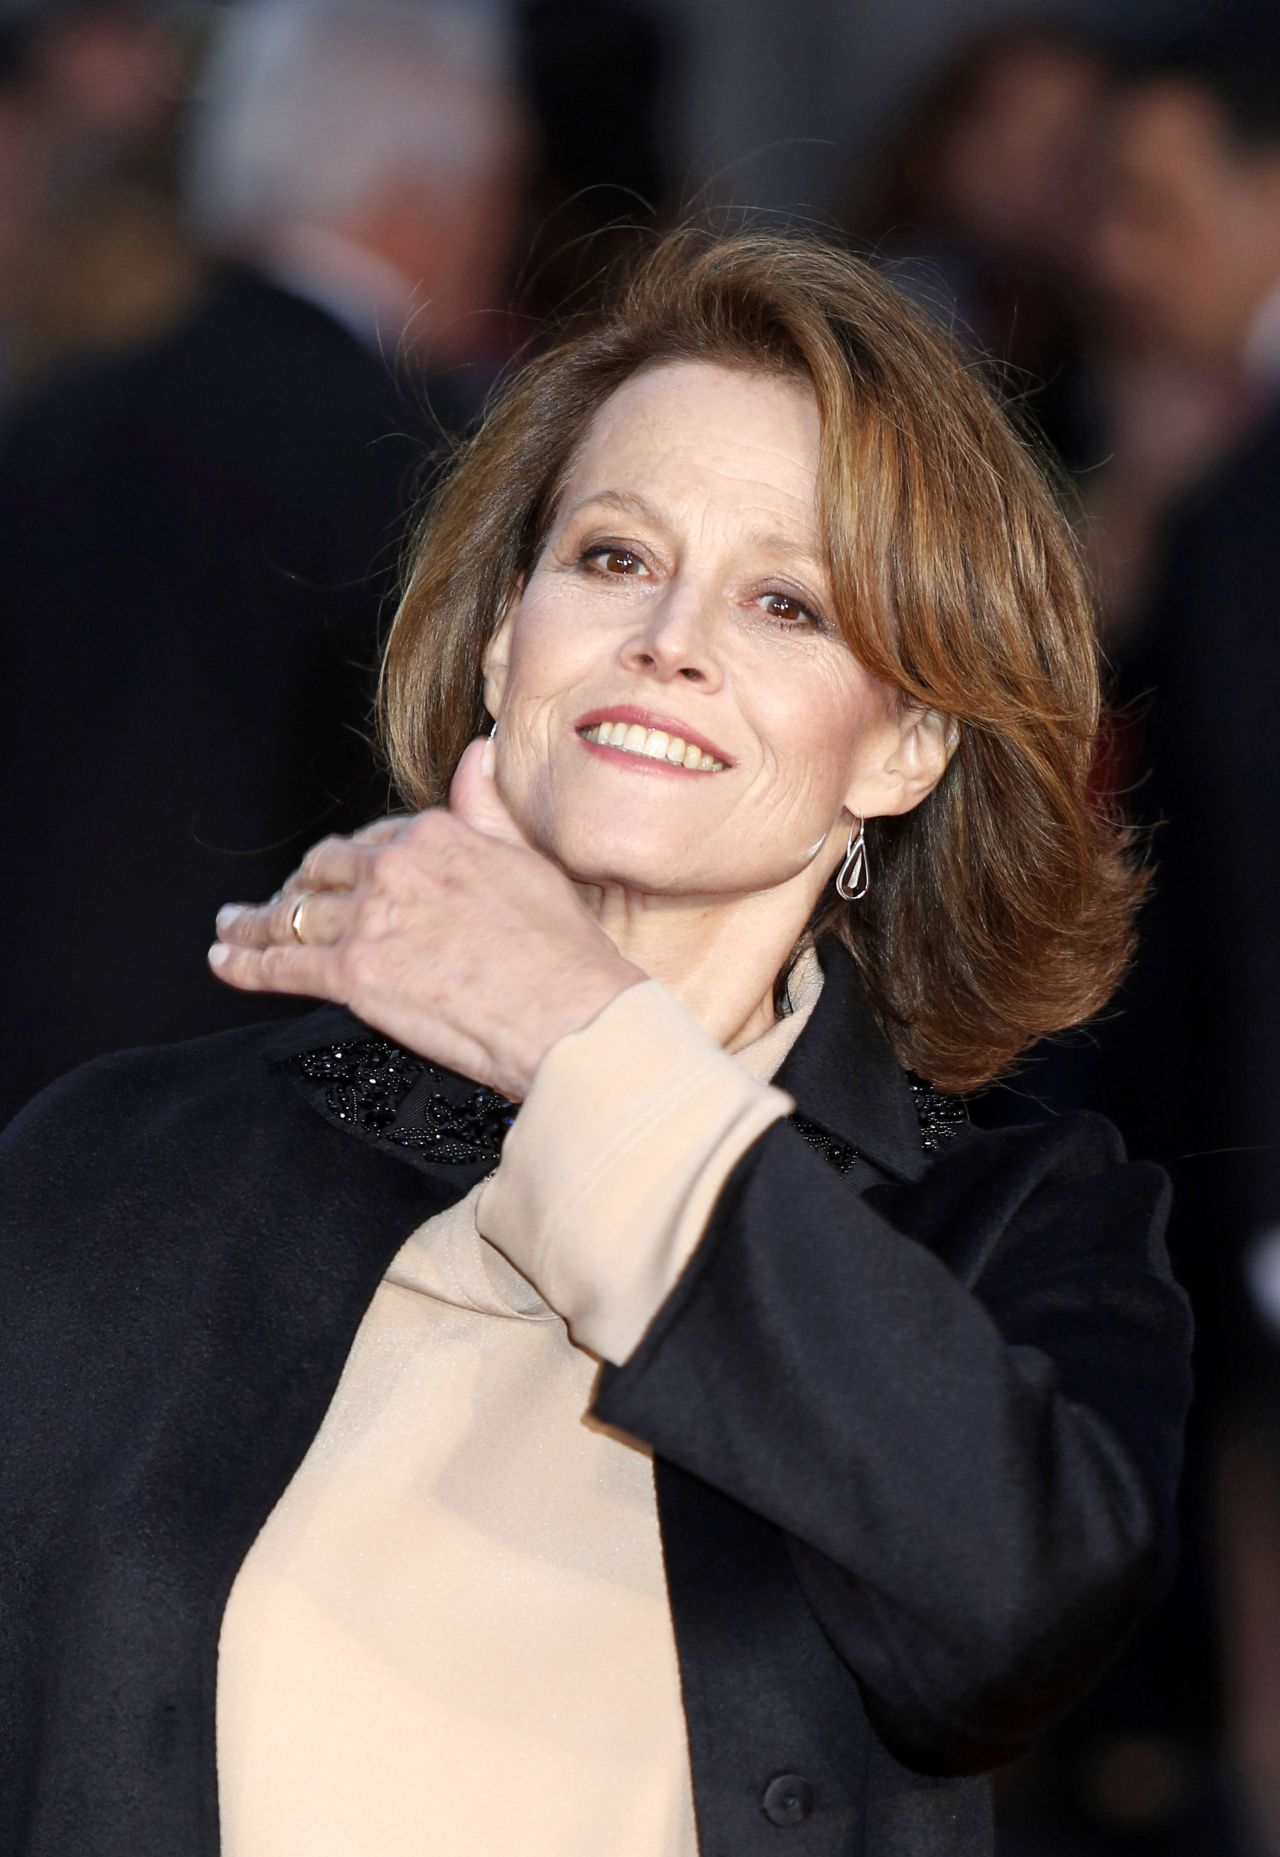 Sigourney Weaver Filmography And Biography On Movies Film: 'A Monster Calls' Screening In London